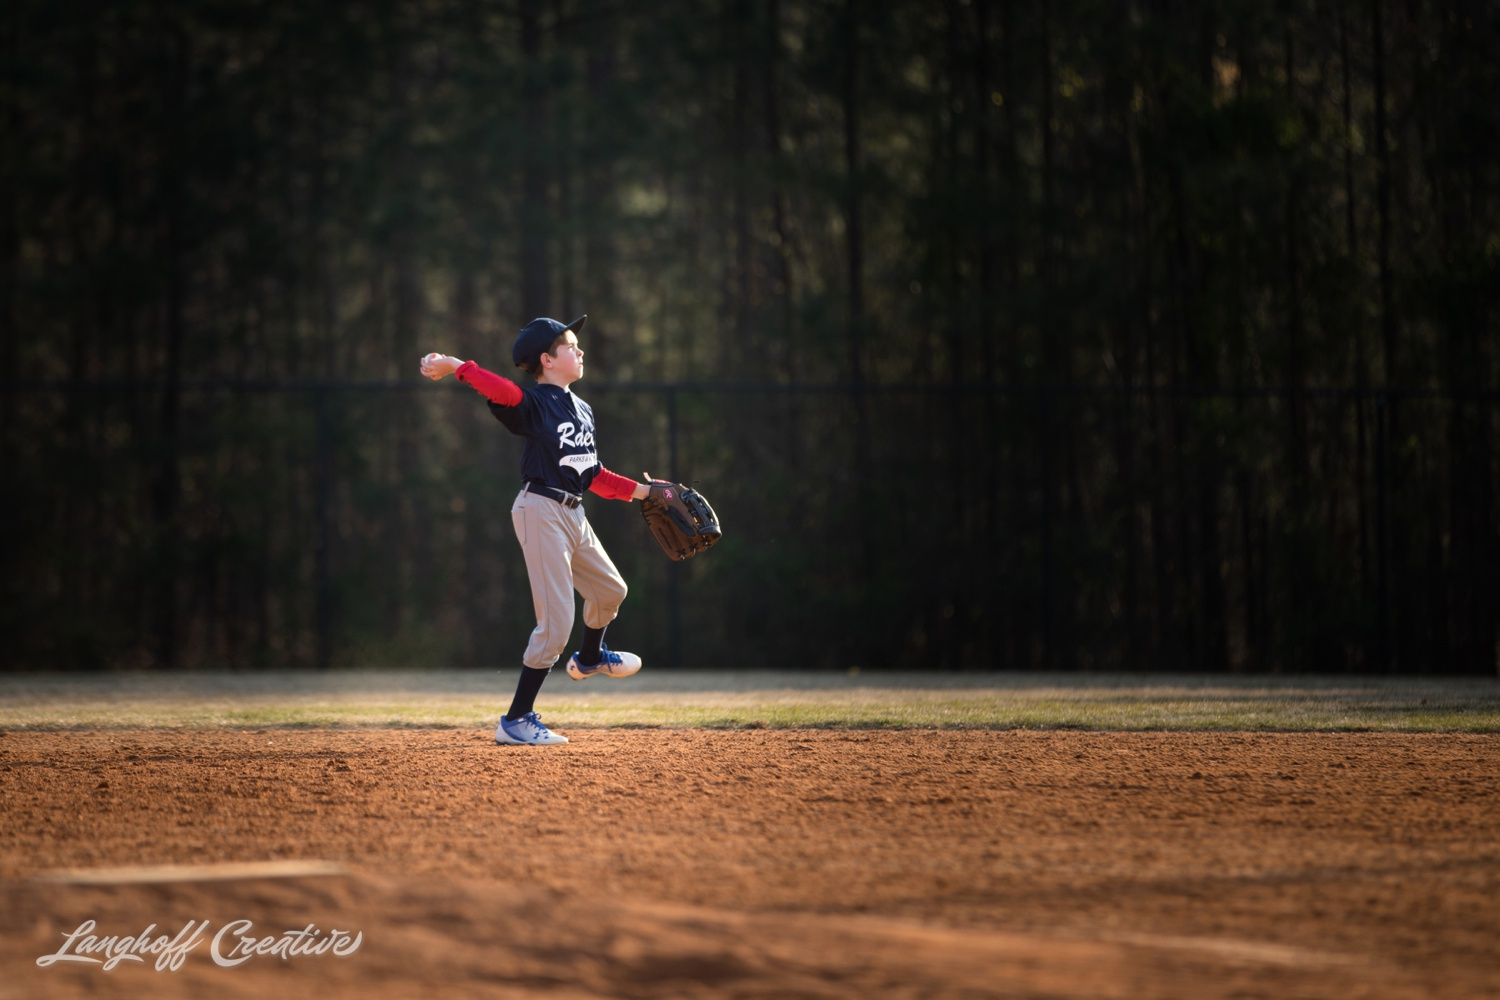 DocumentaryFamilySession-DocumentaryFamilyPhotography-RDUfamily-Baseball-RealLifeSession-LanghoffCreative-George-2018-2-image.jpg